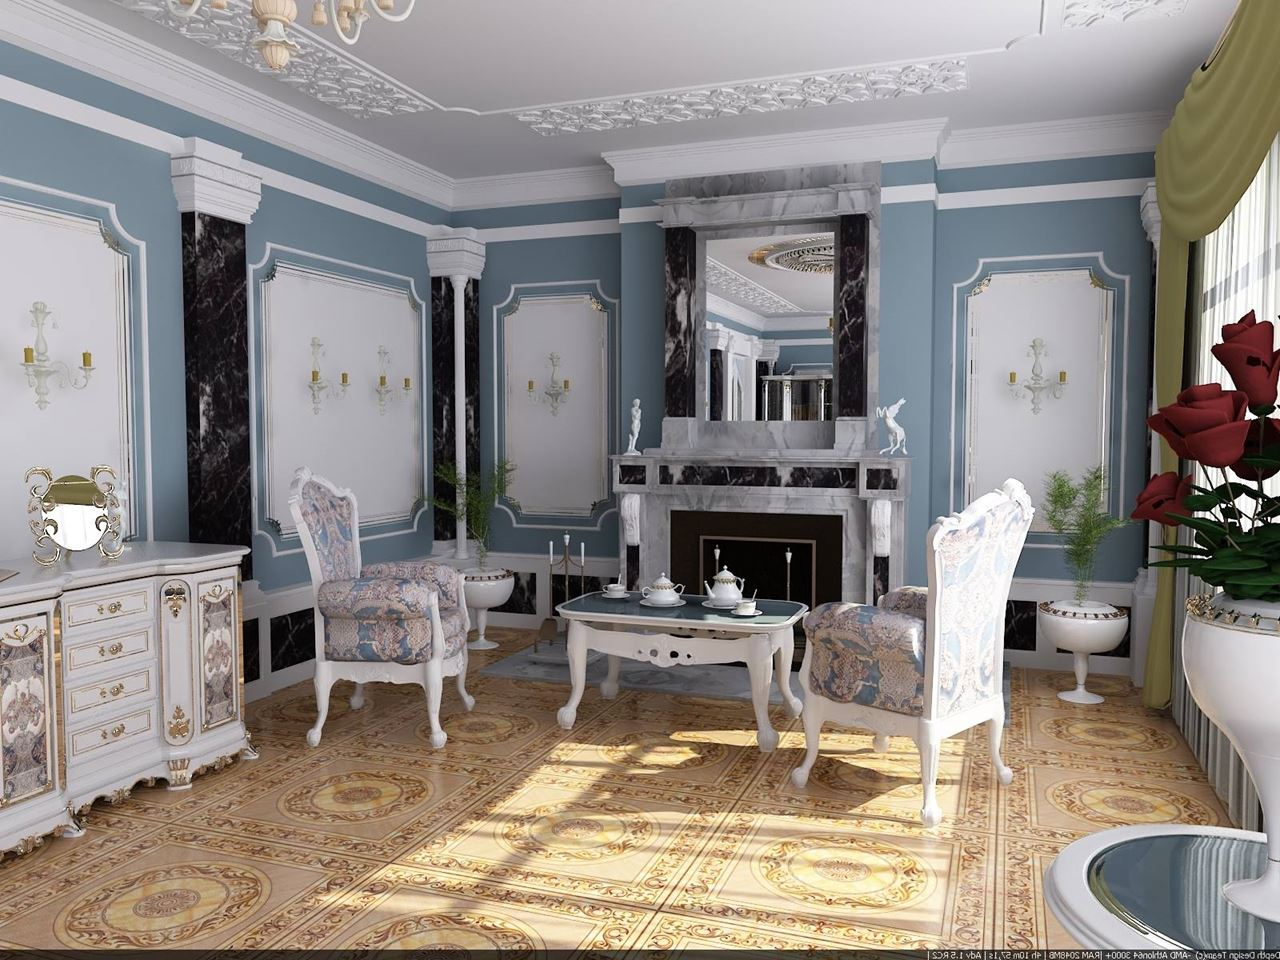 Rococo style interior design ideas for Interior decorating ideas